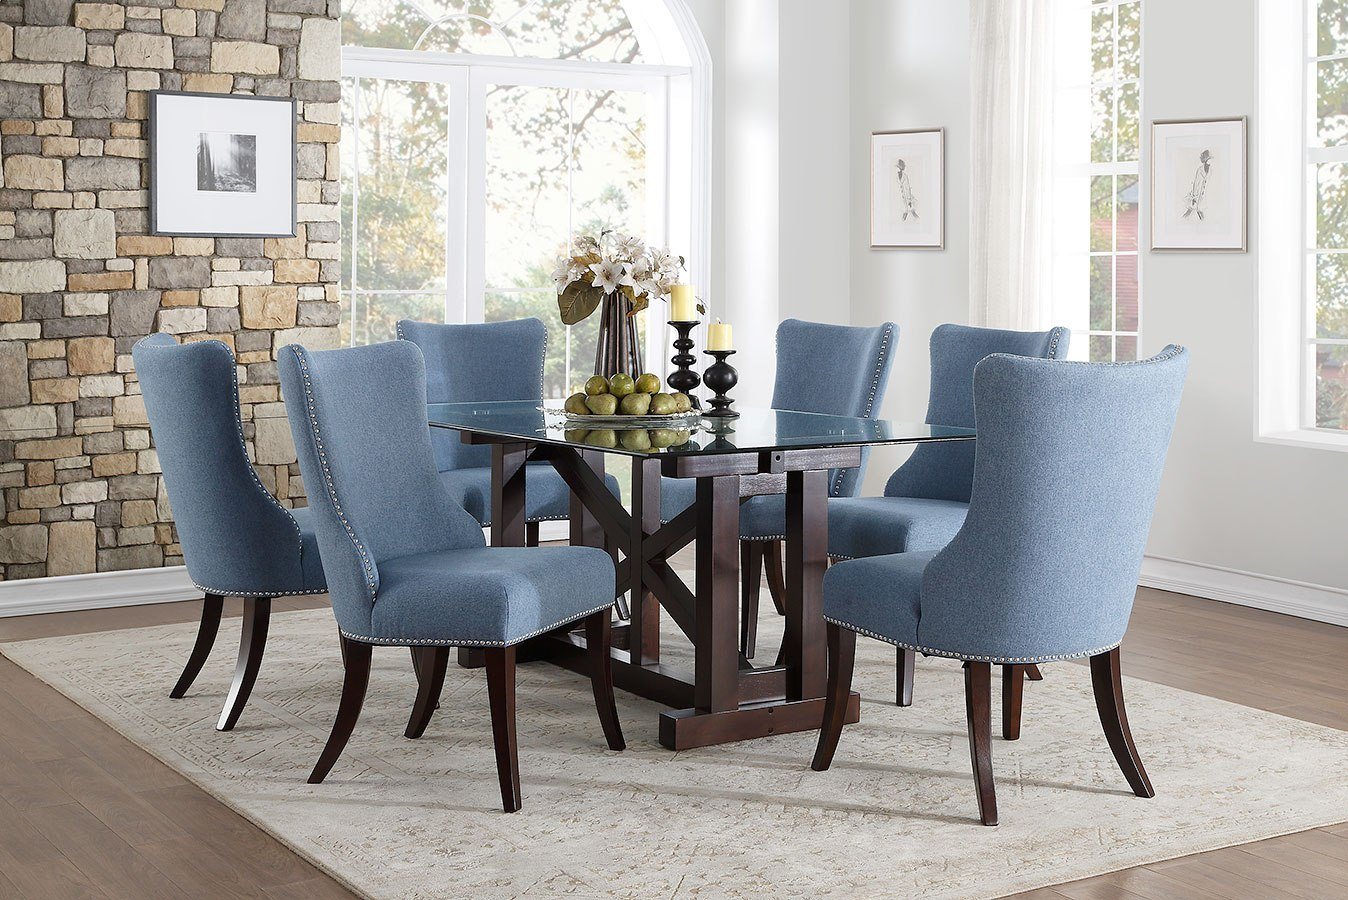 blue dining room set   Salema Dining Room Set w/ Blue Chairs by Homelegance ...